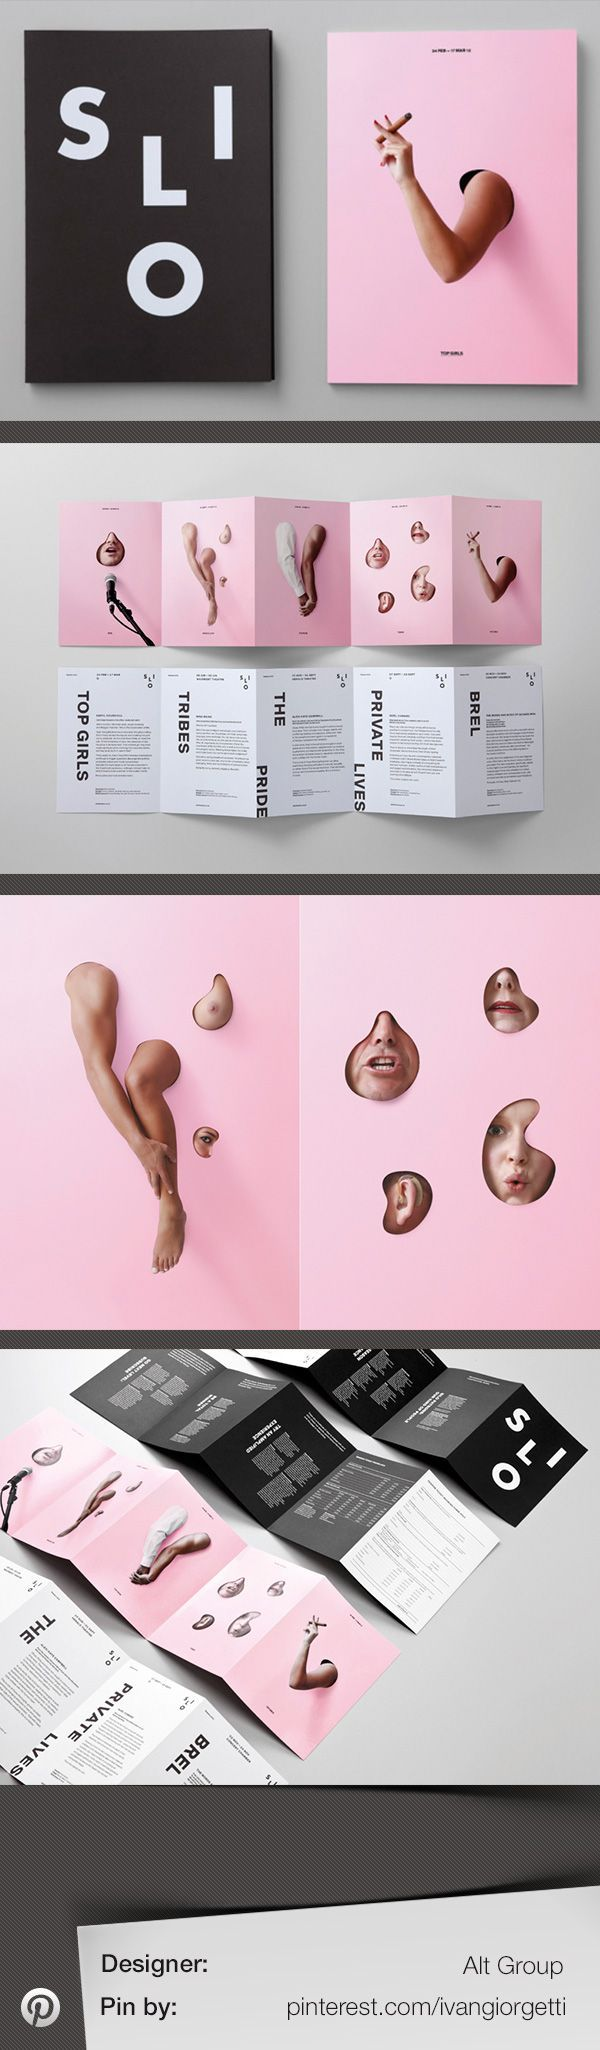 Silo Theatre identity design by Alt-Group